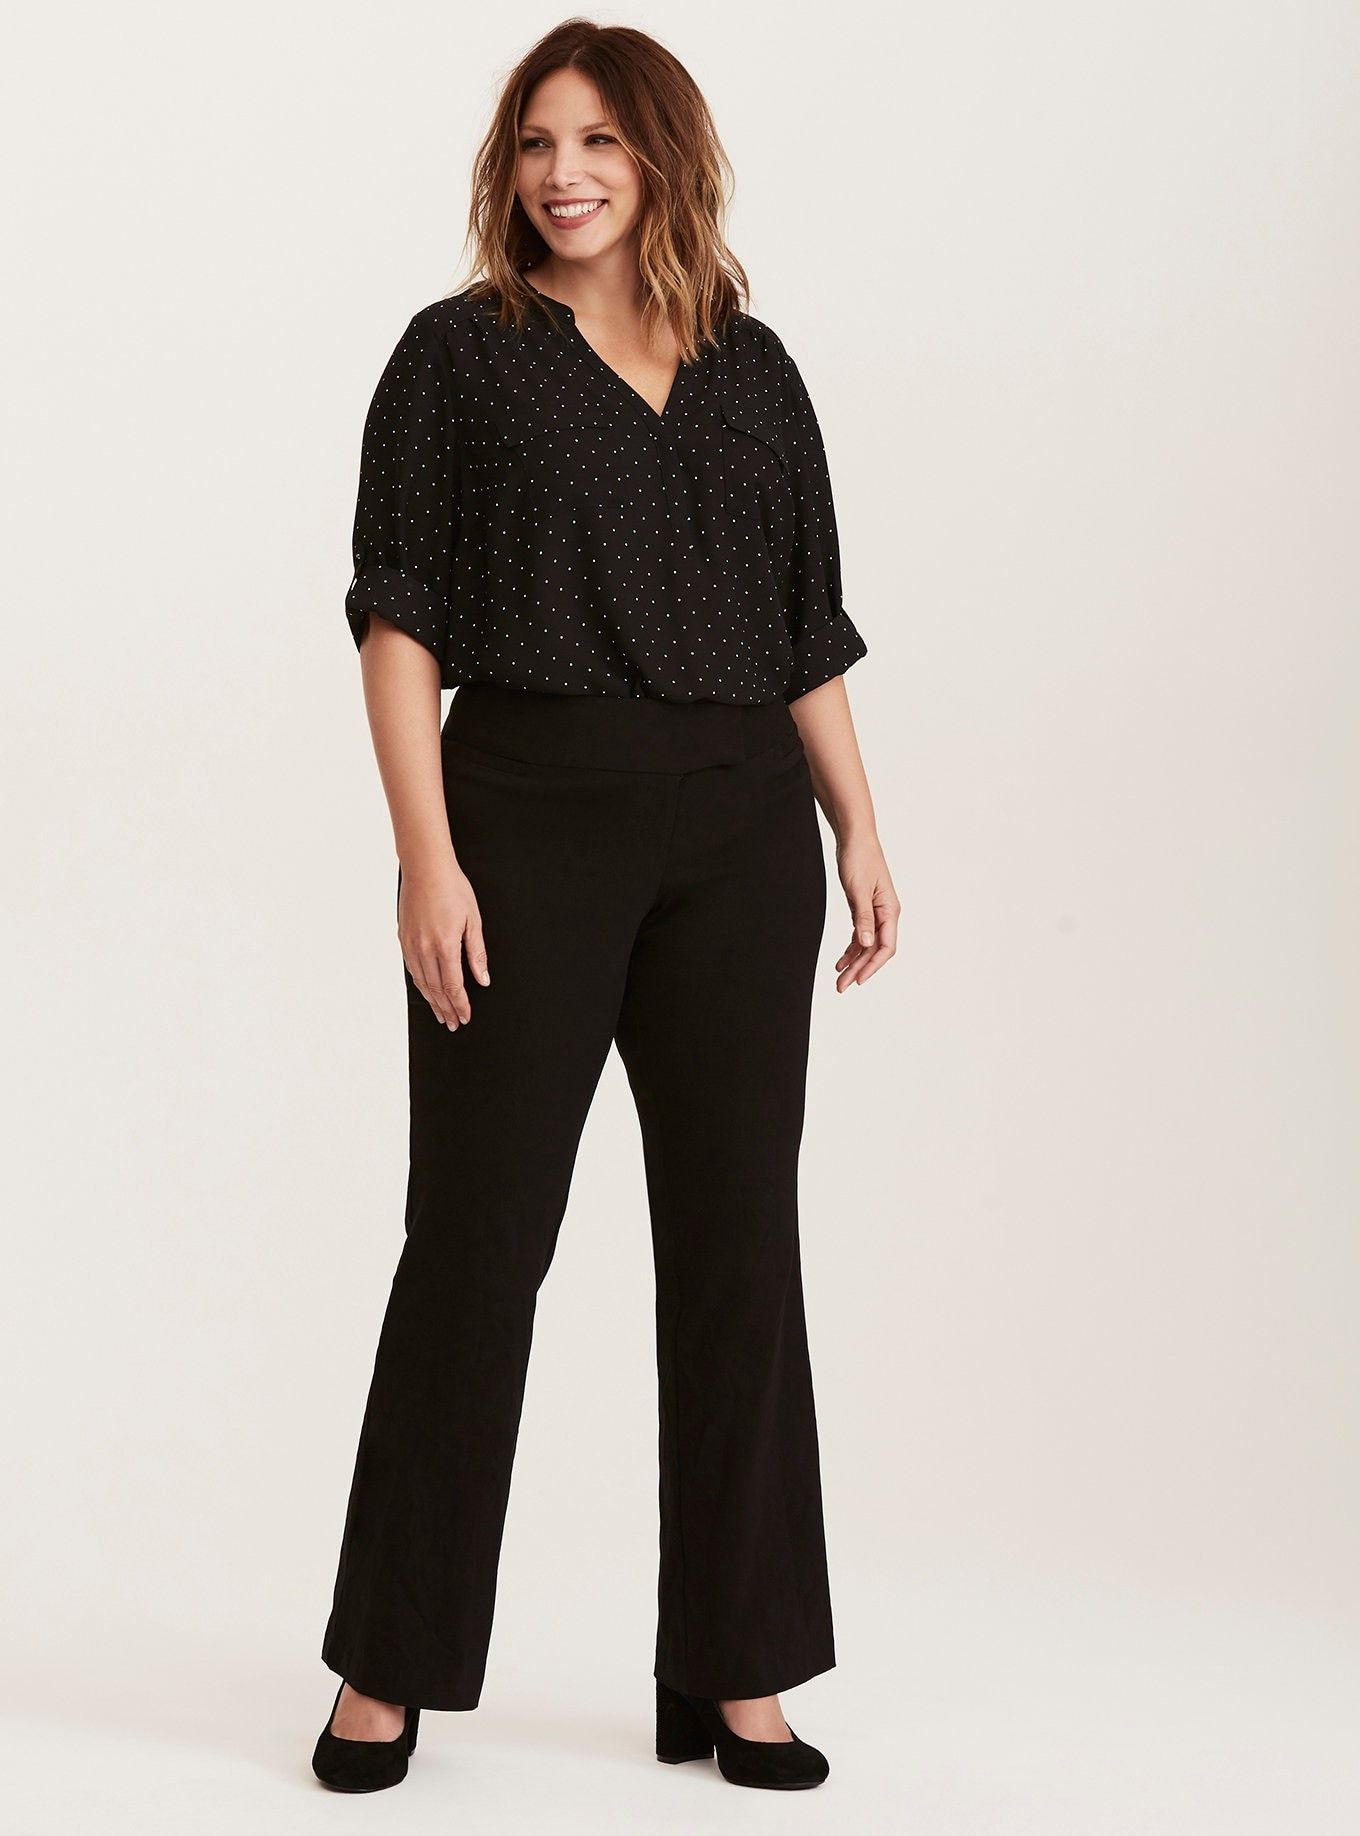 Black relaxed trouser pant party dresses with sleeves